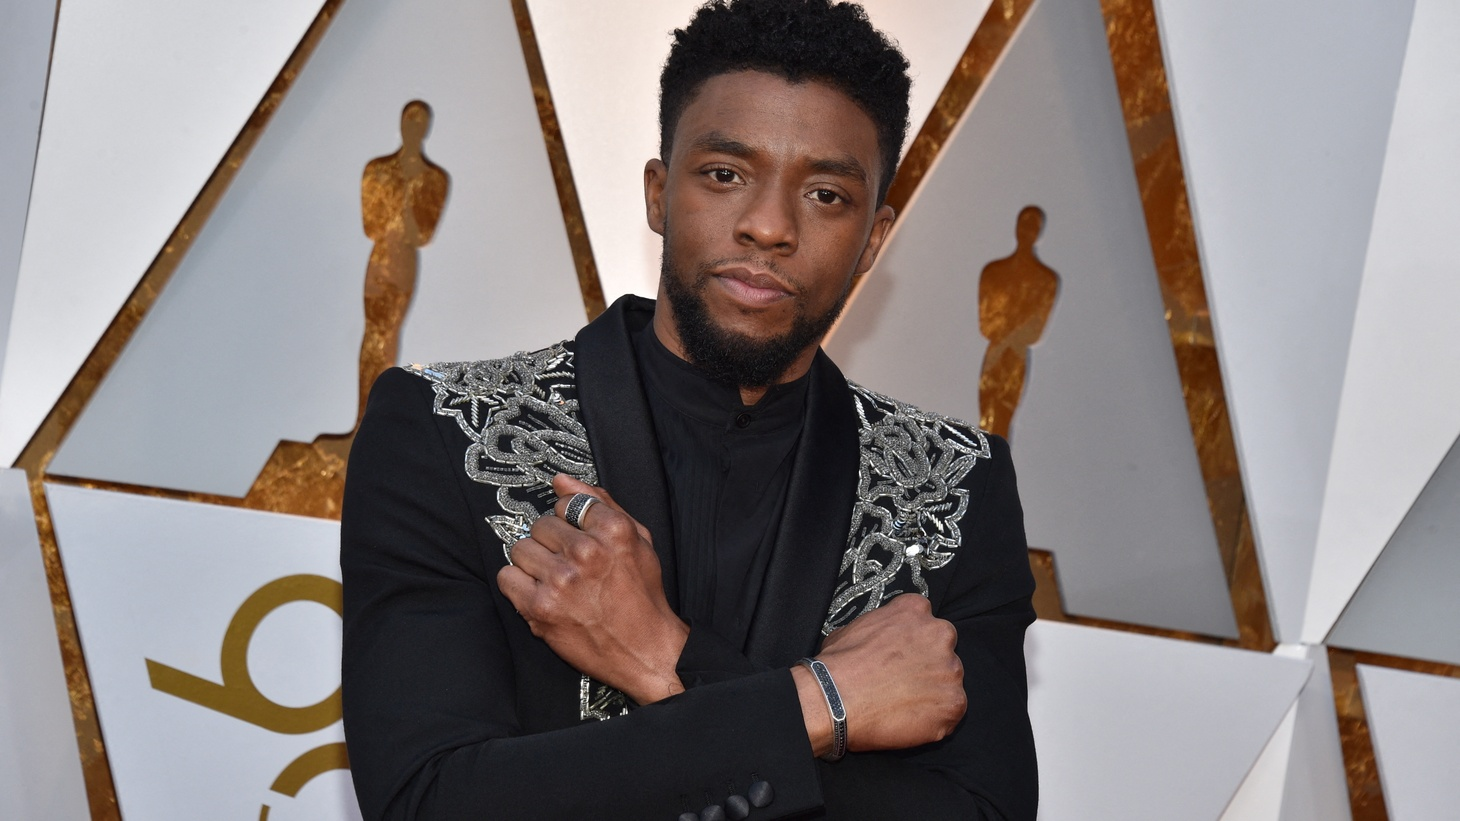 File photo dated March 4, 2018 of Chadwick Boseman arriving for the 90th annual Academy Awards held at the Dolby Theatre in Los Angeles, CA, USA. US actor Chadwick Boseman, best known for playing Black Panther in the hit Marvel superhero franchise, has died of cancer aged 43.